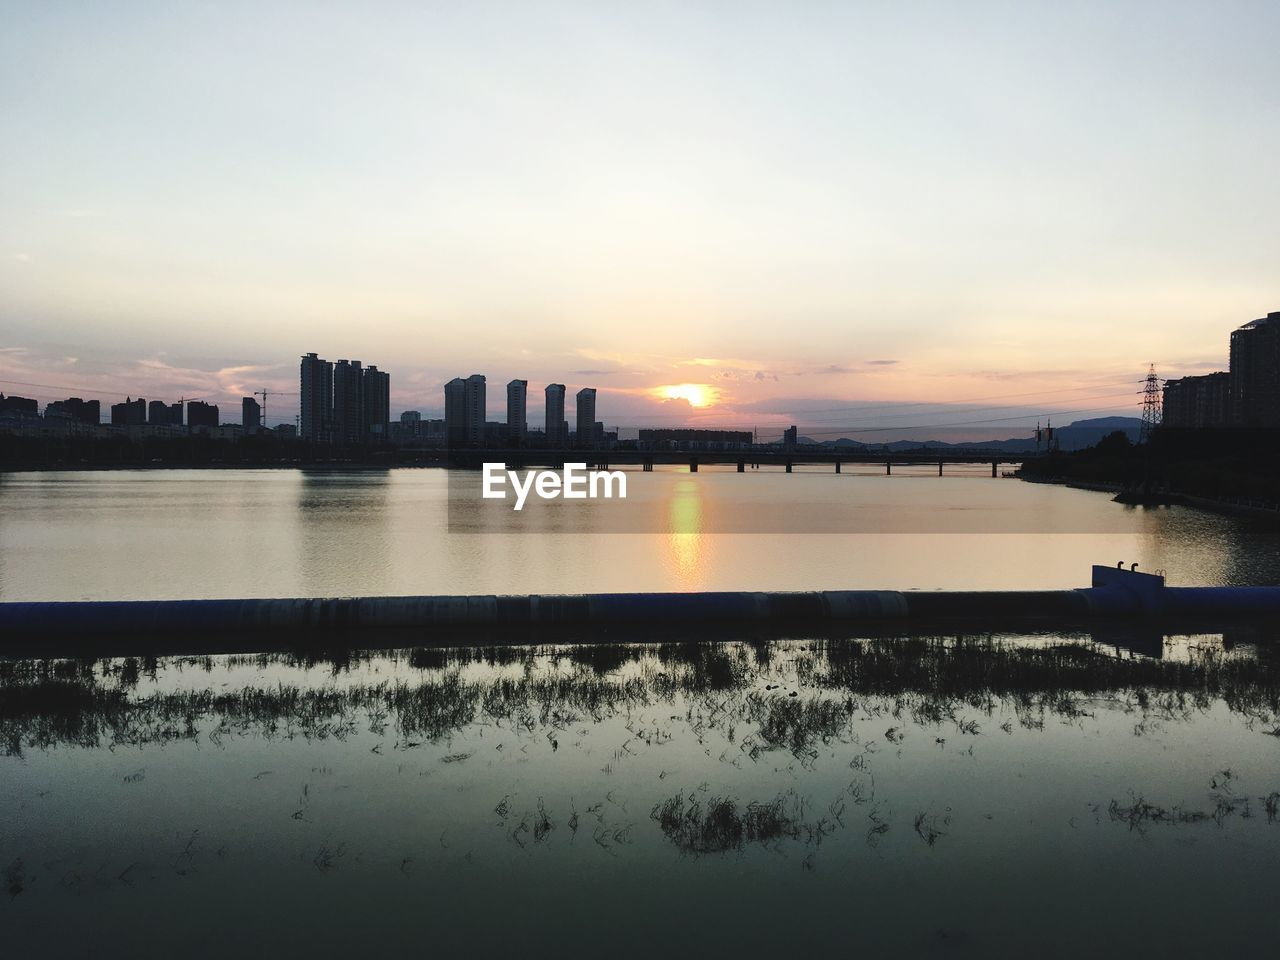 sky, water, architecture, built structure, building exterior, sunset, city, reflection, nature, building, no people, waterfront, river, urban skyline, landscape, beauty in nature, cloud - sky, scenics - nature, outdoors, cityscape, office building exterior, skyscraper